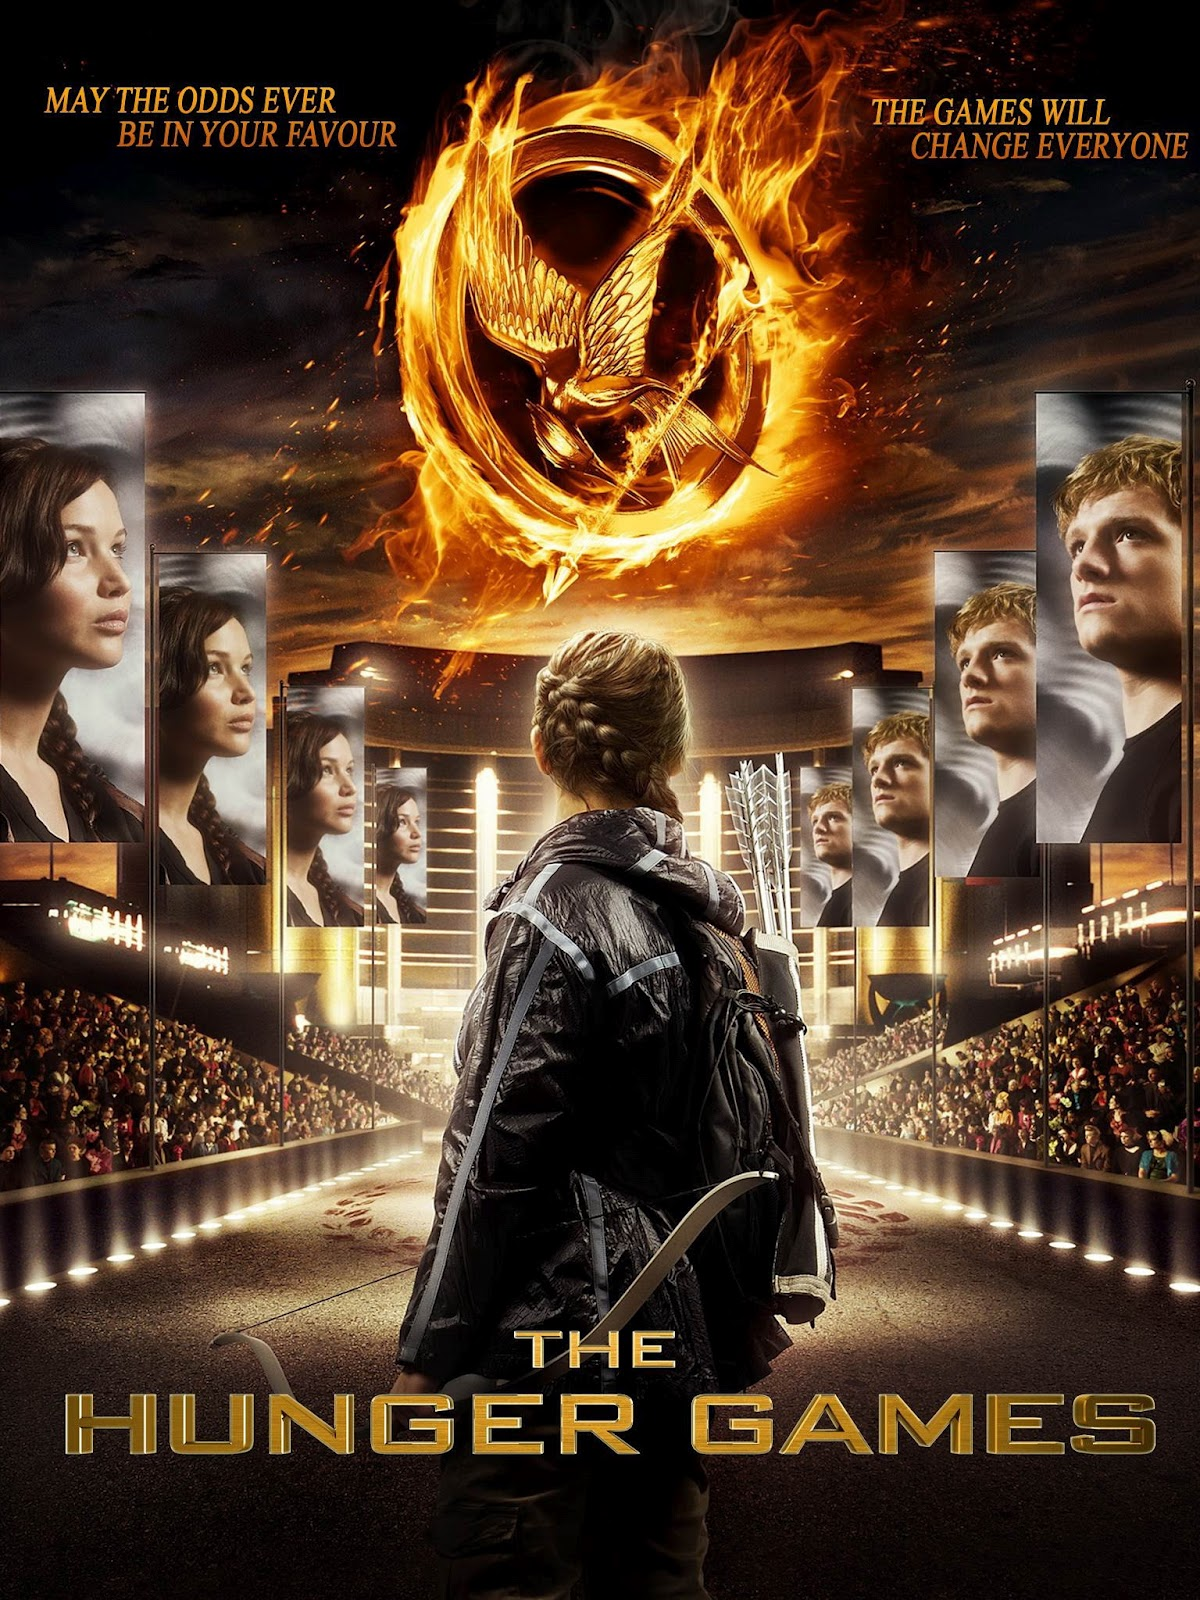 movie review for the hunger games This third installment in the hunger games series of films has moved on to bigger and badder things, beyond the arena and into the stark realities of living in panem.